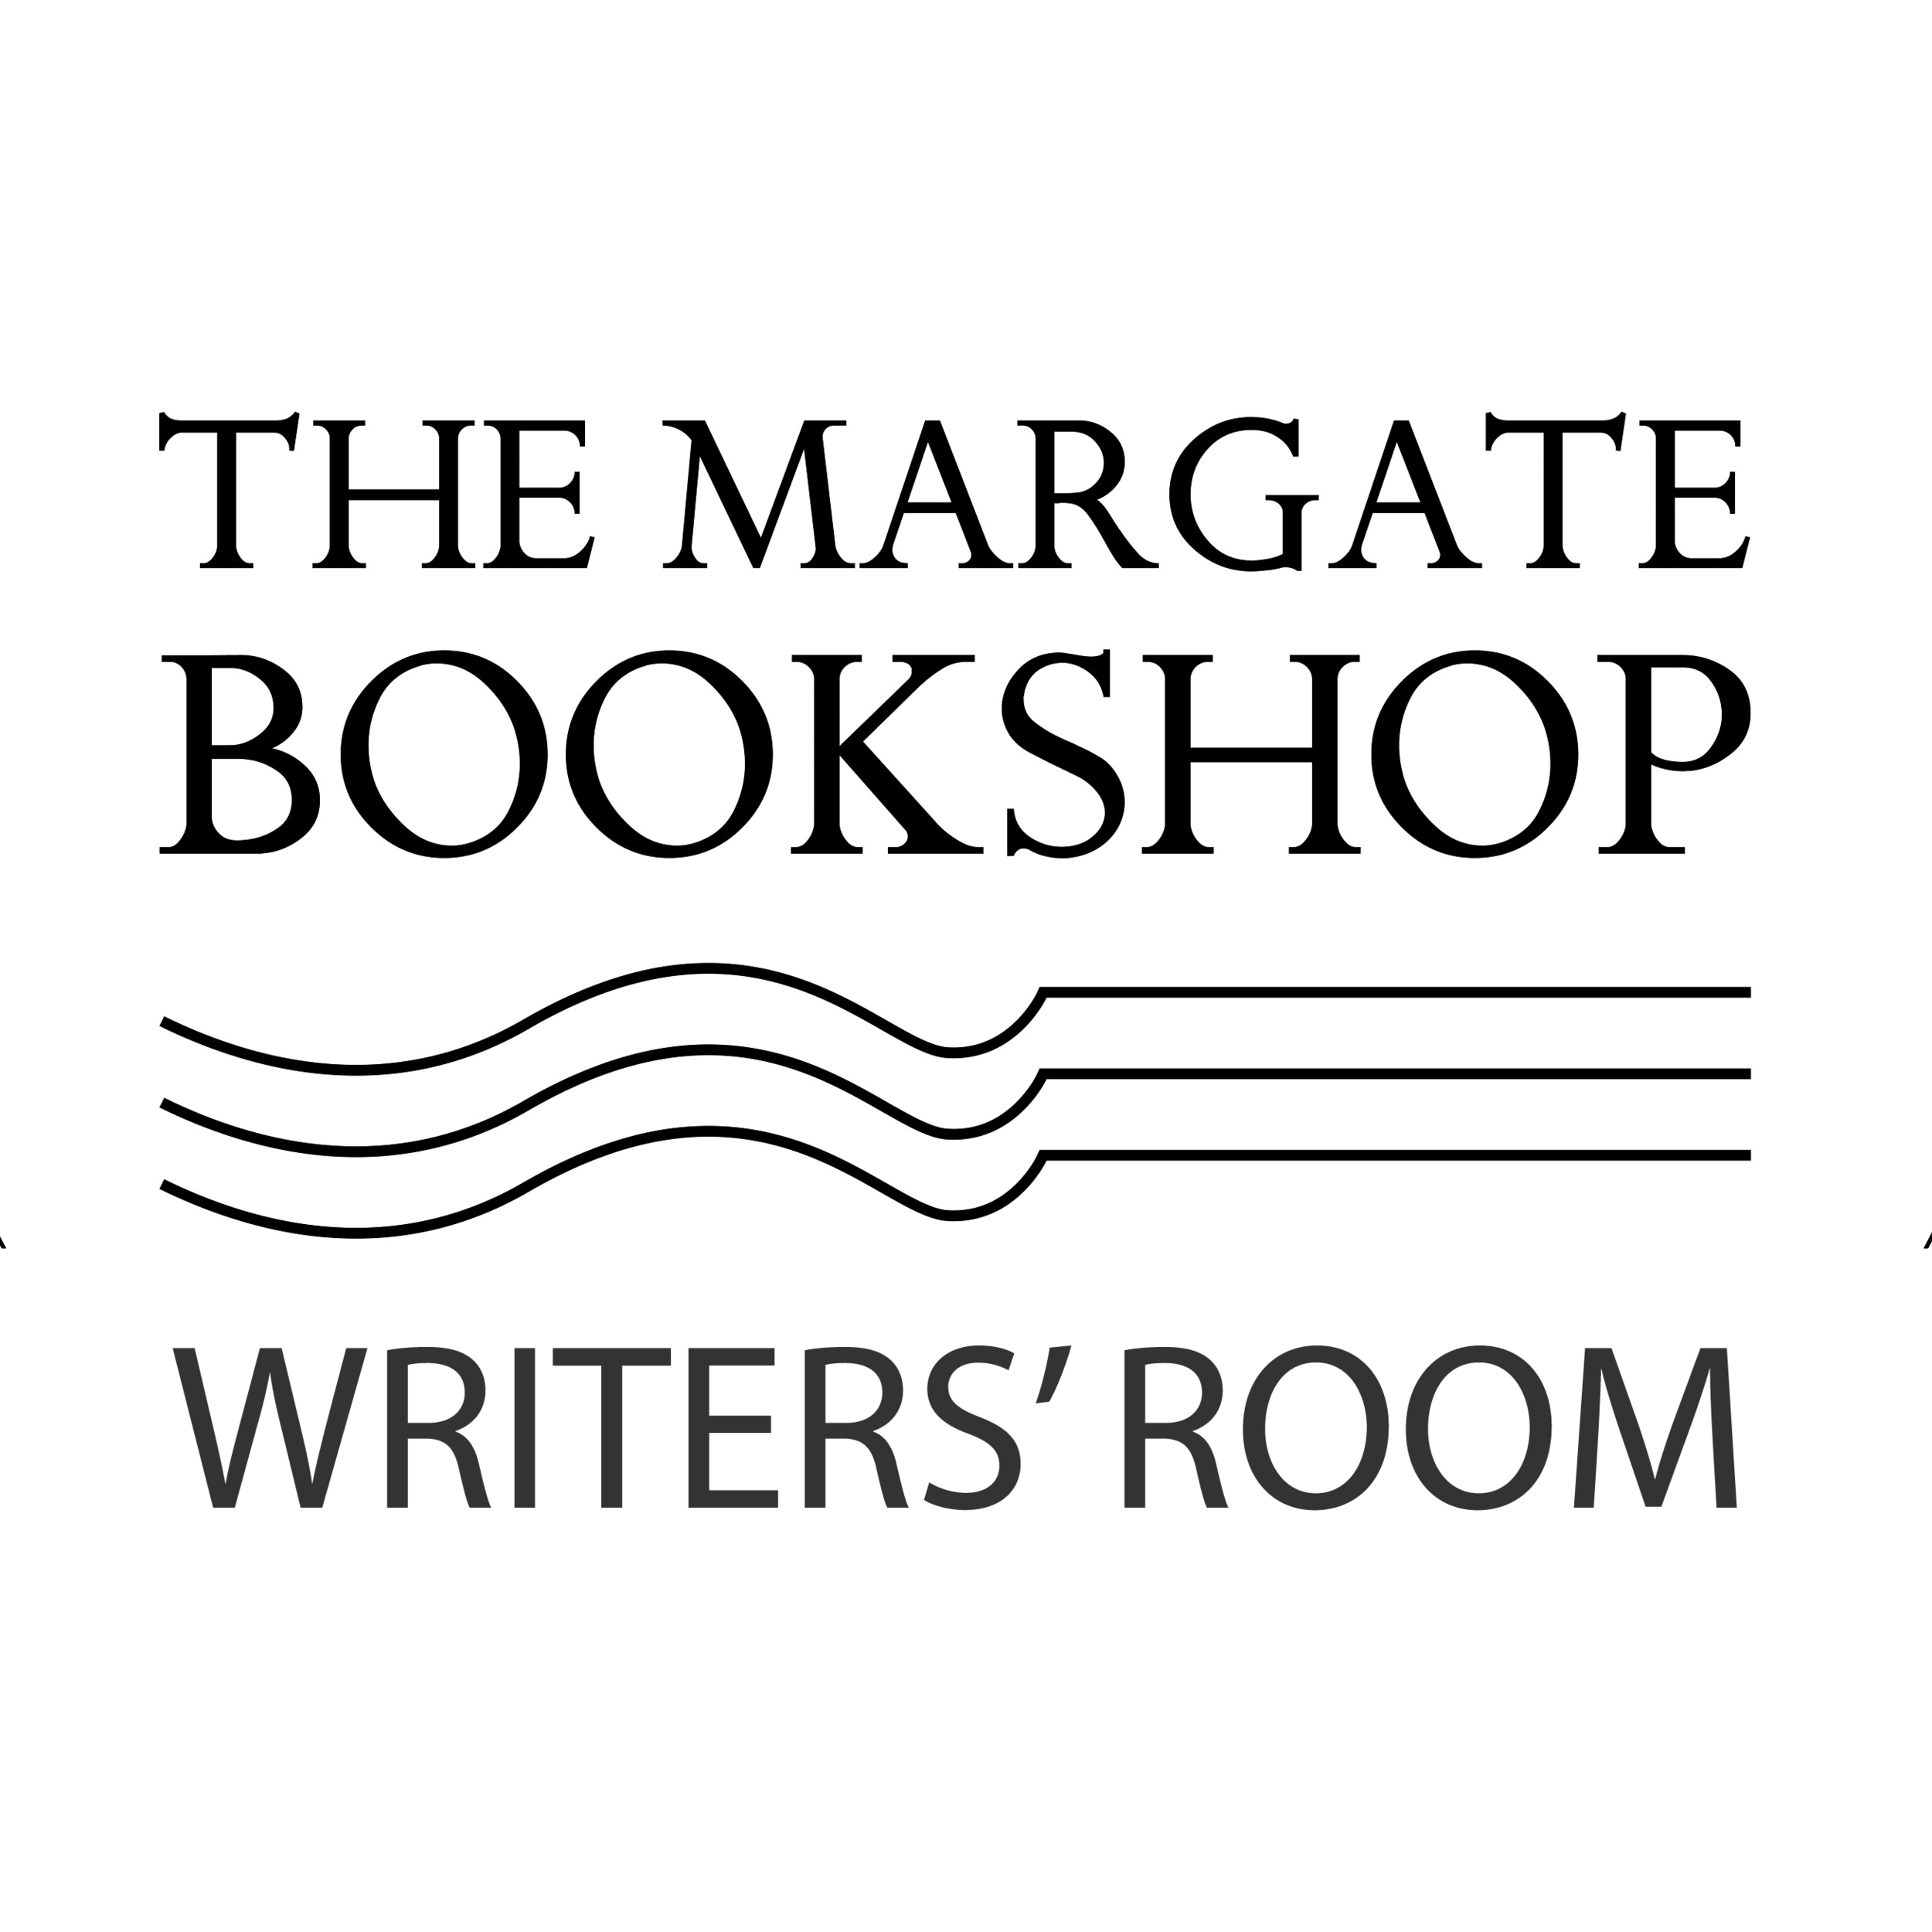 A living room and workspace for readers, writers and creatives right in the heart of Margate. - Opening August 2019…